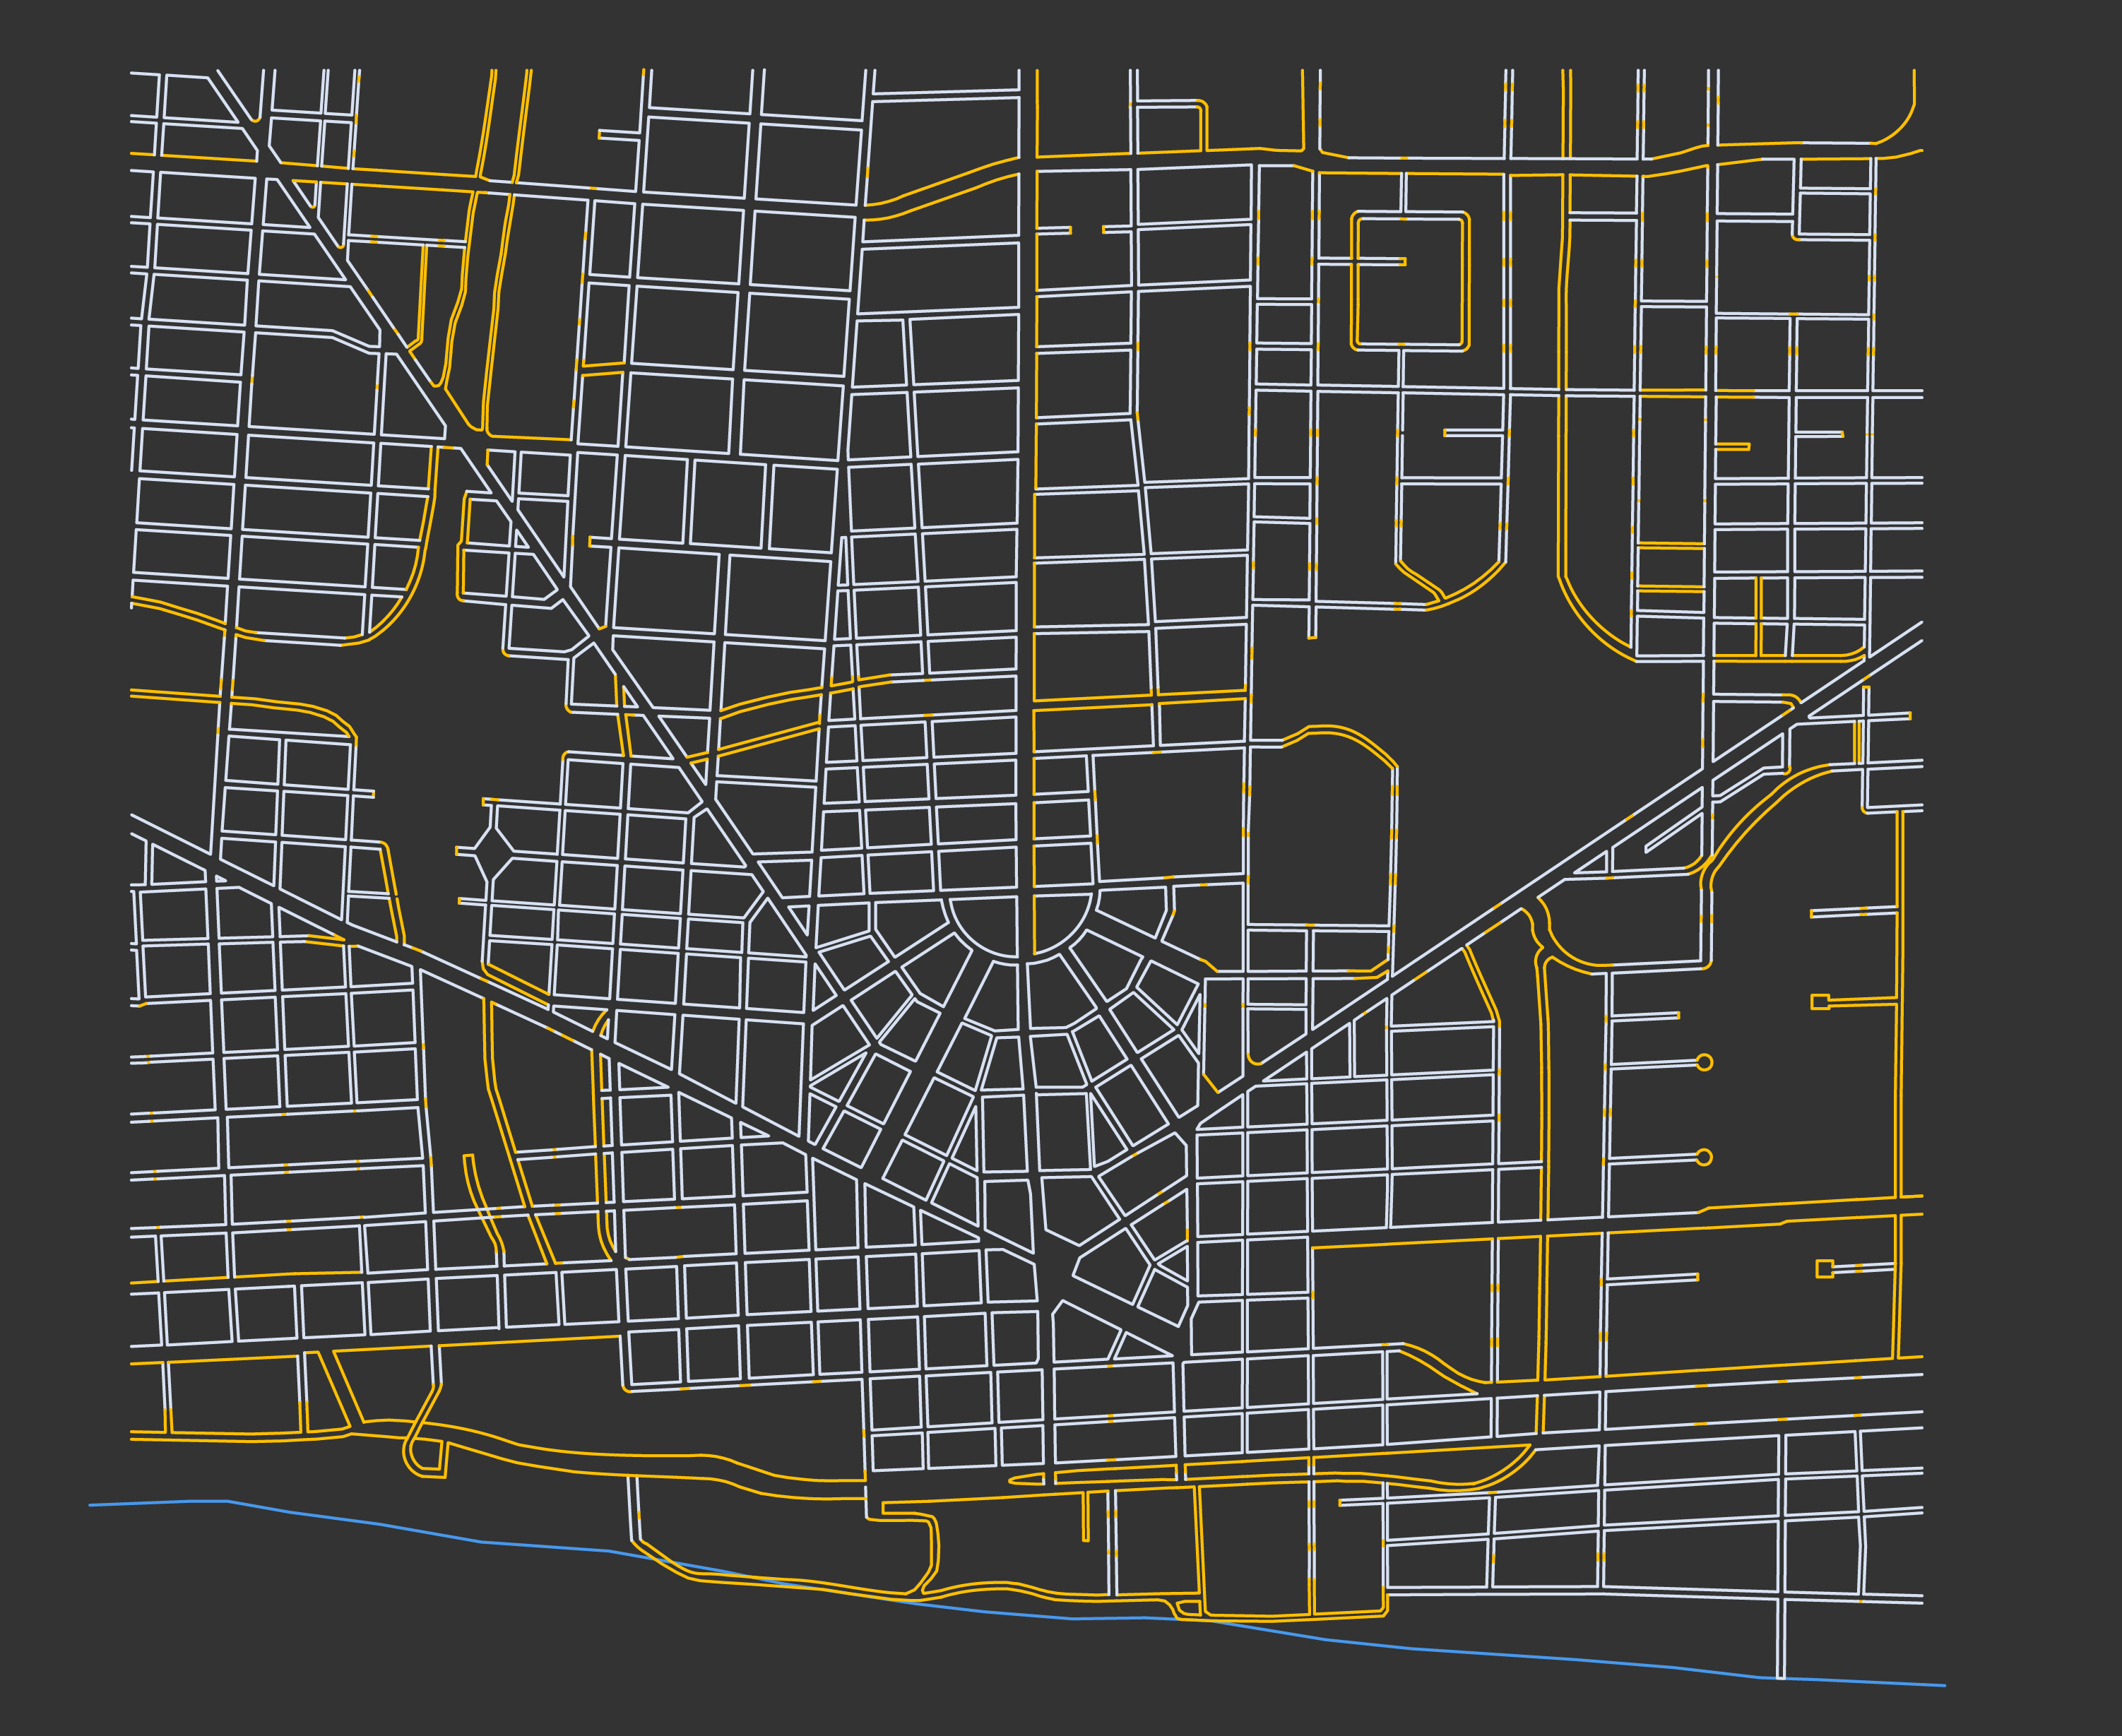 Tearing of the Urban Fabric | Data Driven Detroit